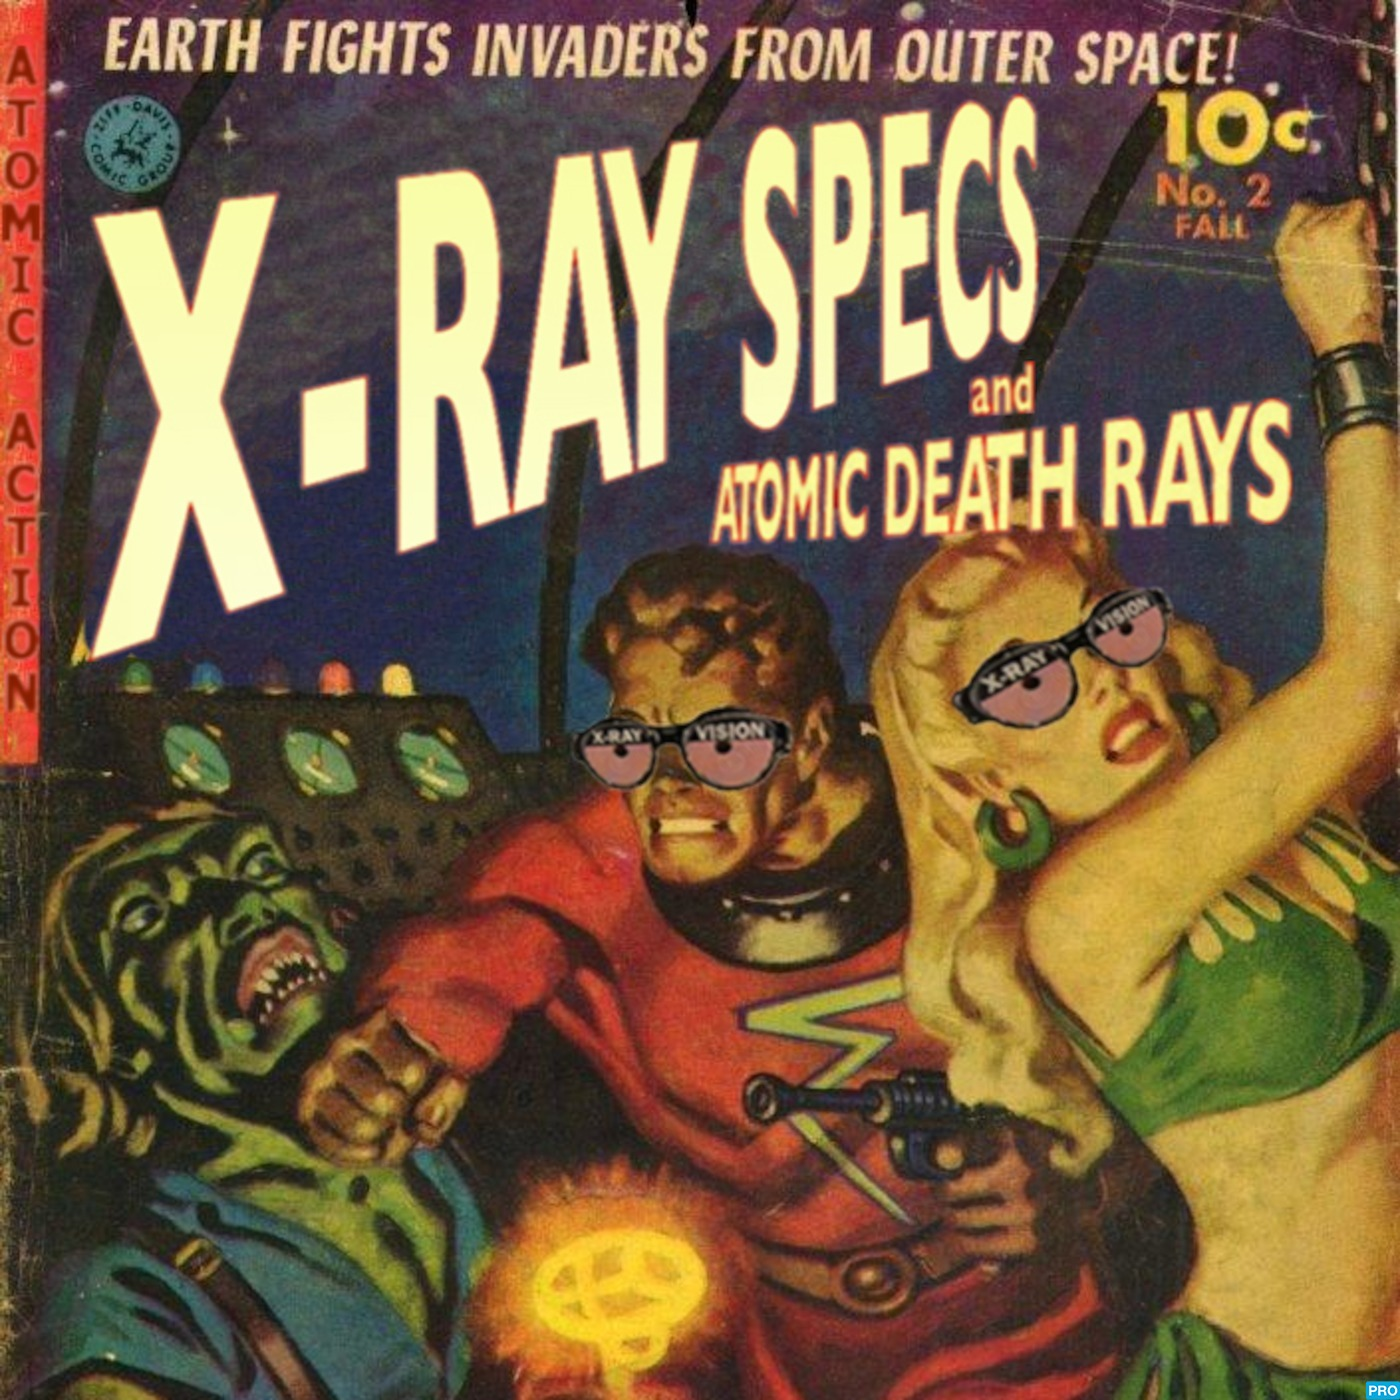 X-ray Specs and Atomic Death Rays